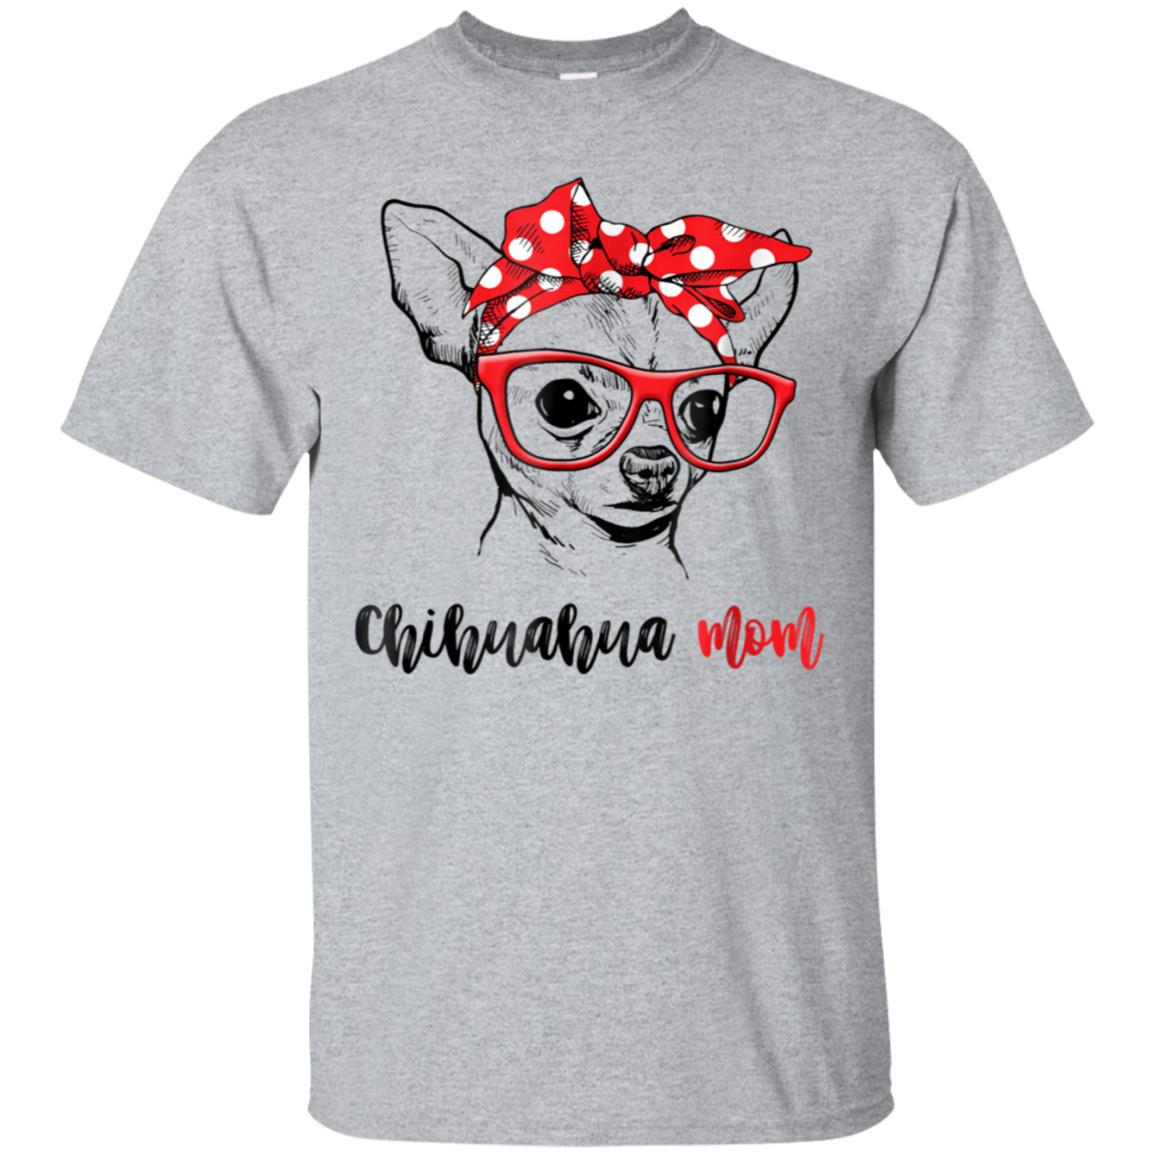 Chihuahua Mom T-Shirt Gift For Women 99promocode